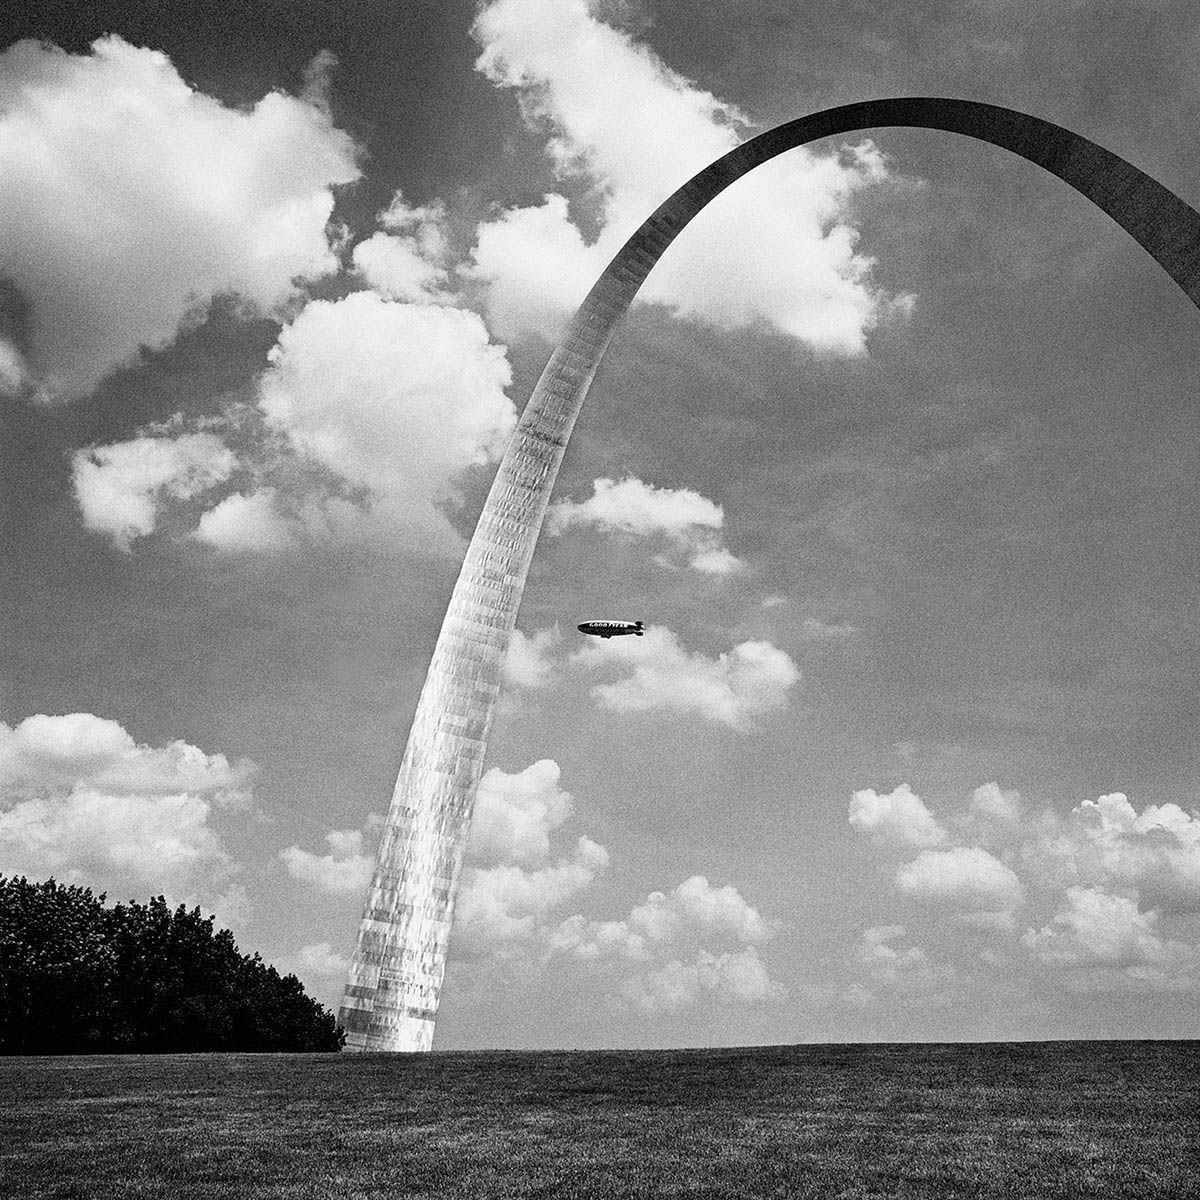 St Louis Arch, Missouri, 1999